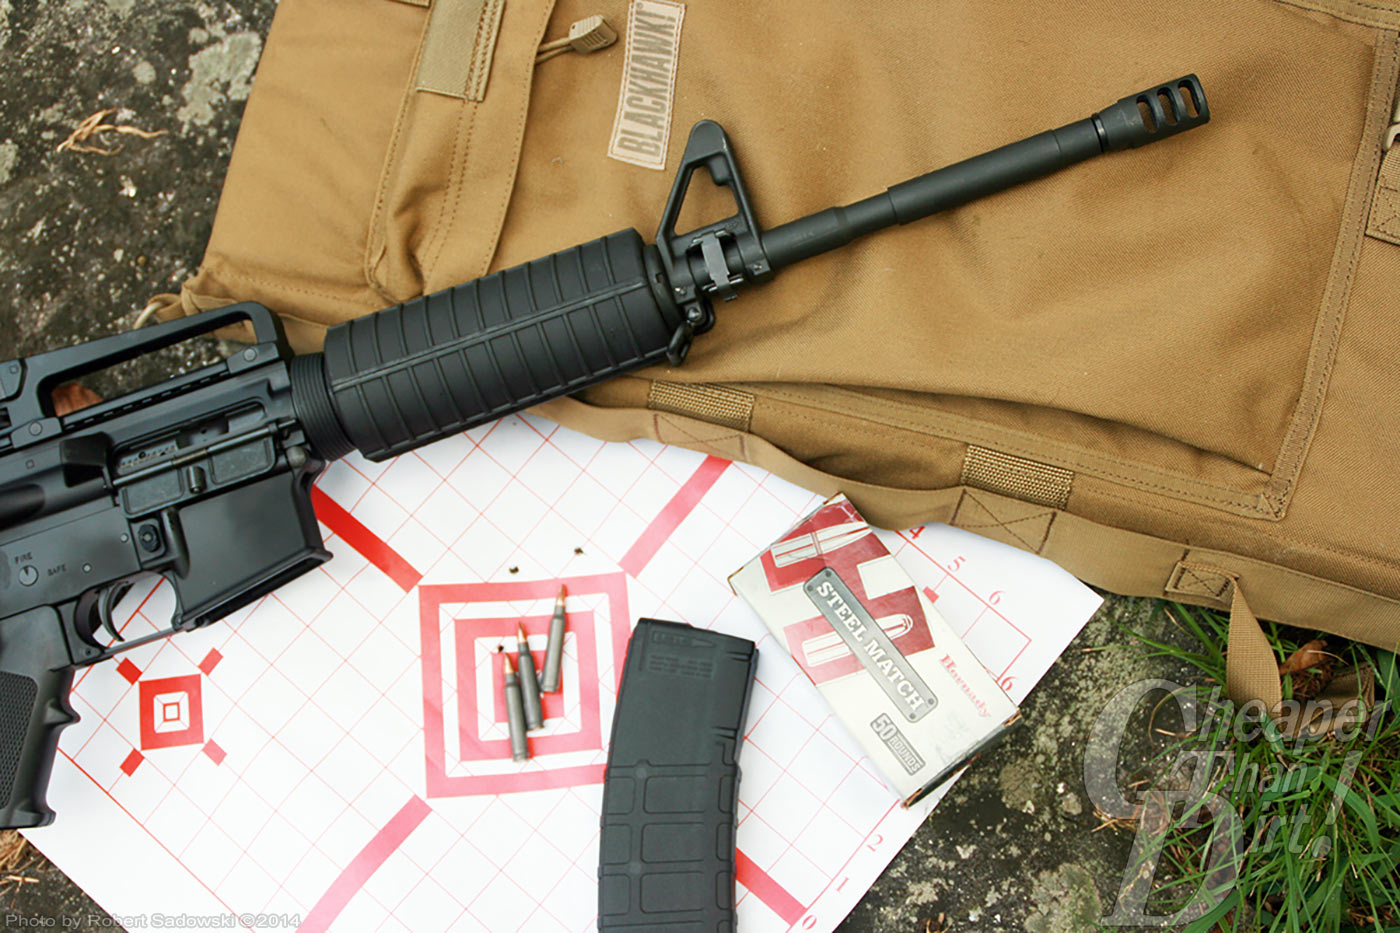 Stag Arms Model 1: A Basic AR-15 Equipped for Reliability